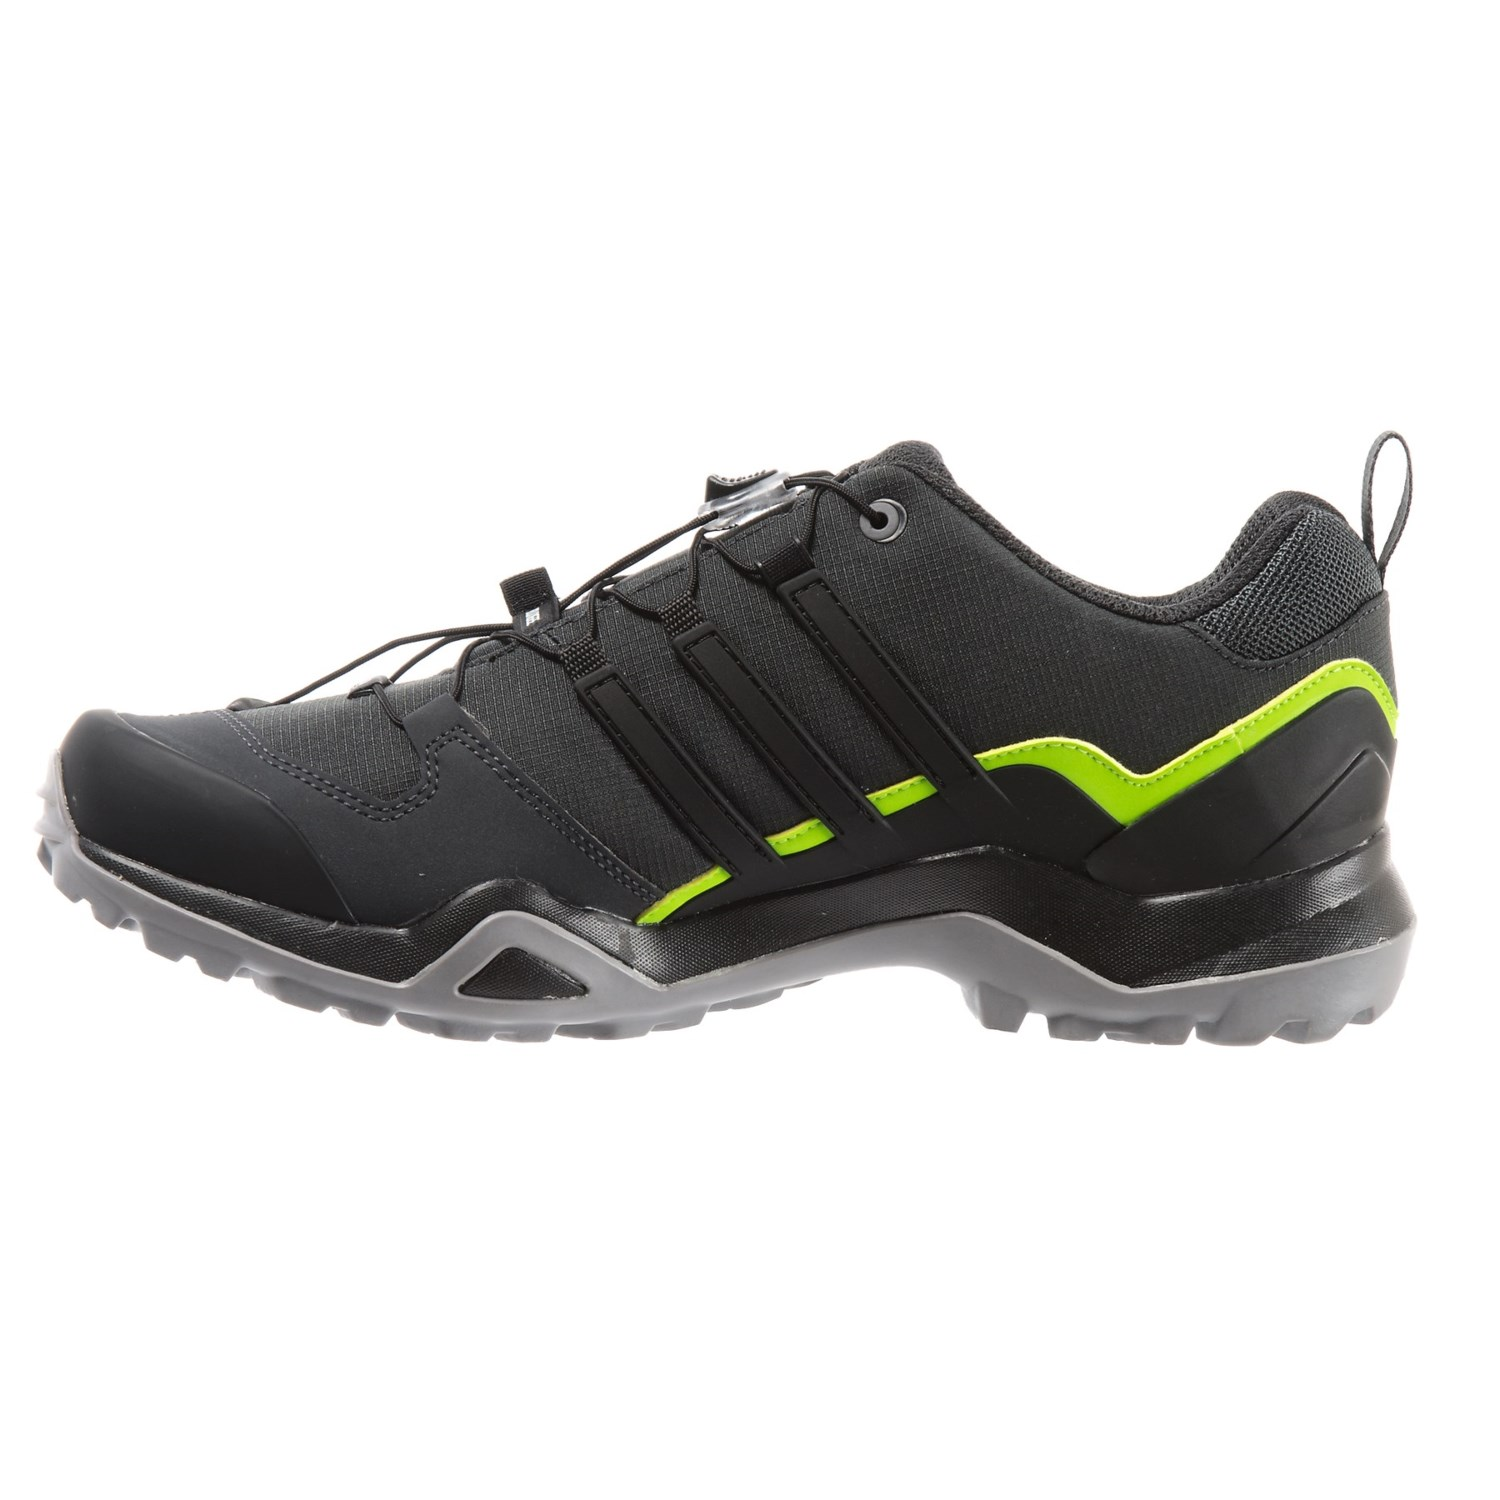 abf681fa29c59 adidas Terrex Swift R2 Hiking Shoes (For Men) - Save 39%